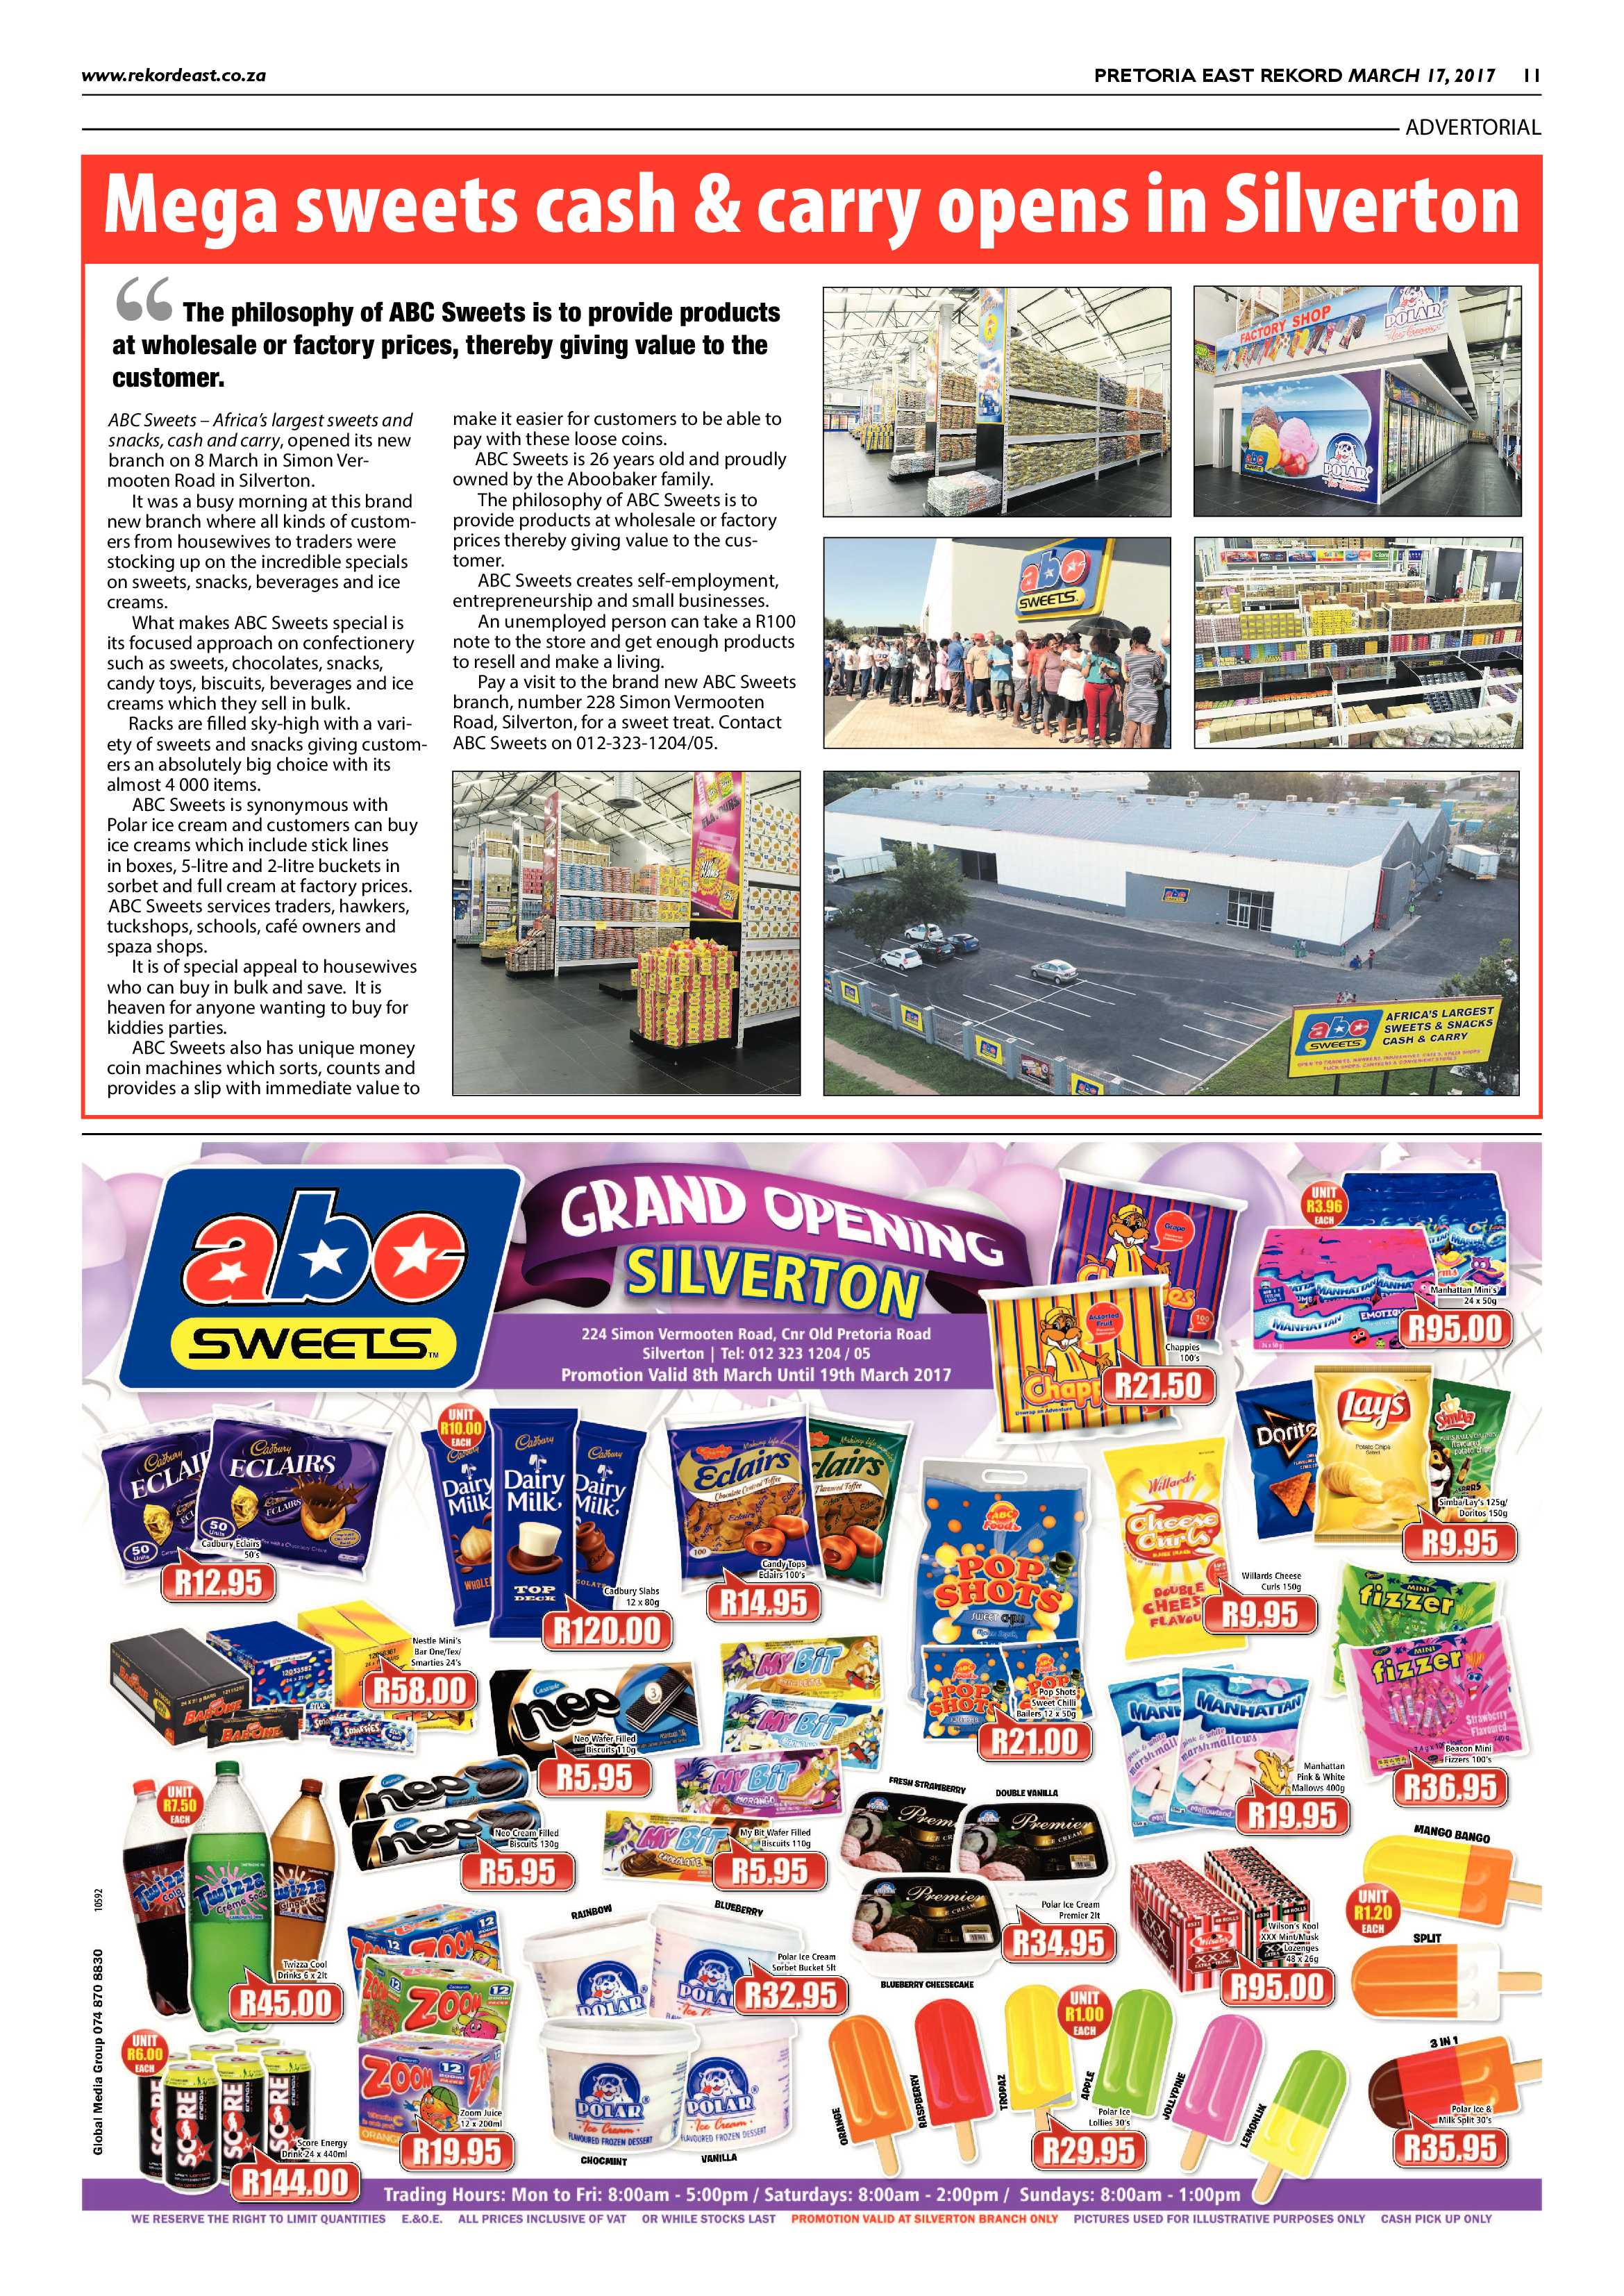 rekord-east-17-march-2017-epapers-page-11